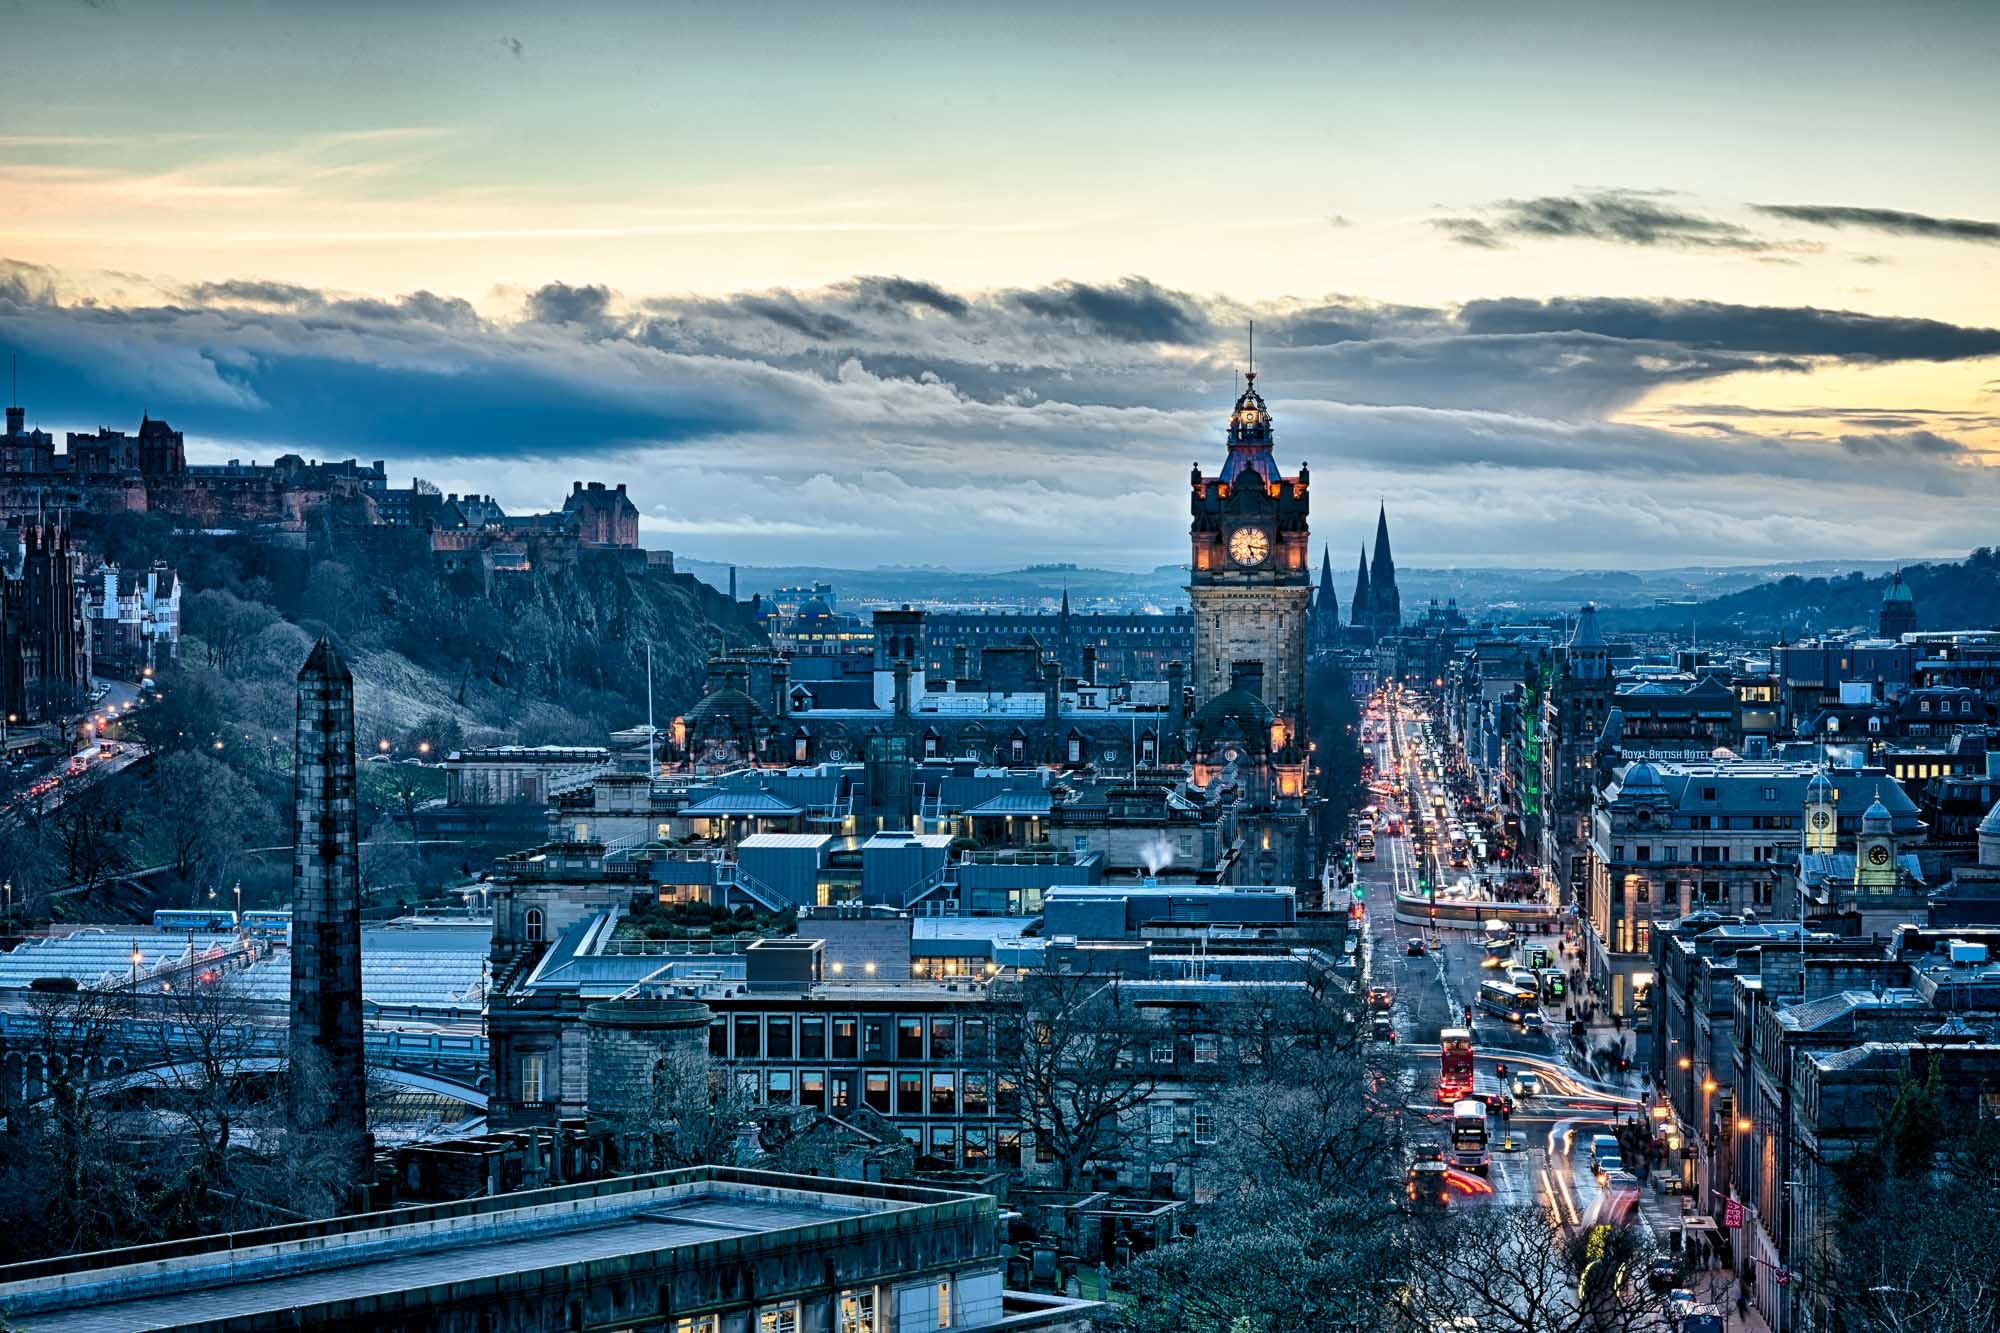 Edinburgh's Princes Street from Calton Hill, Blue hour. Photography by Iain Robinson.